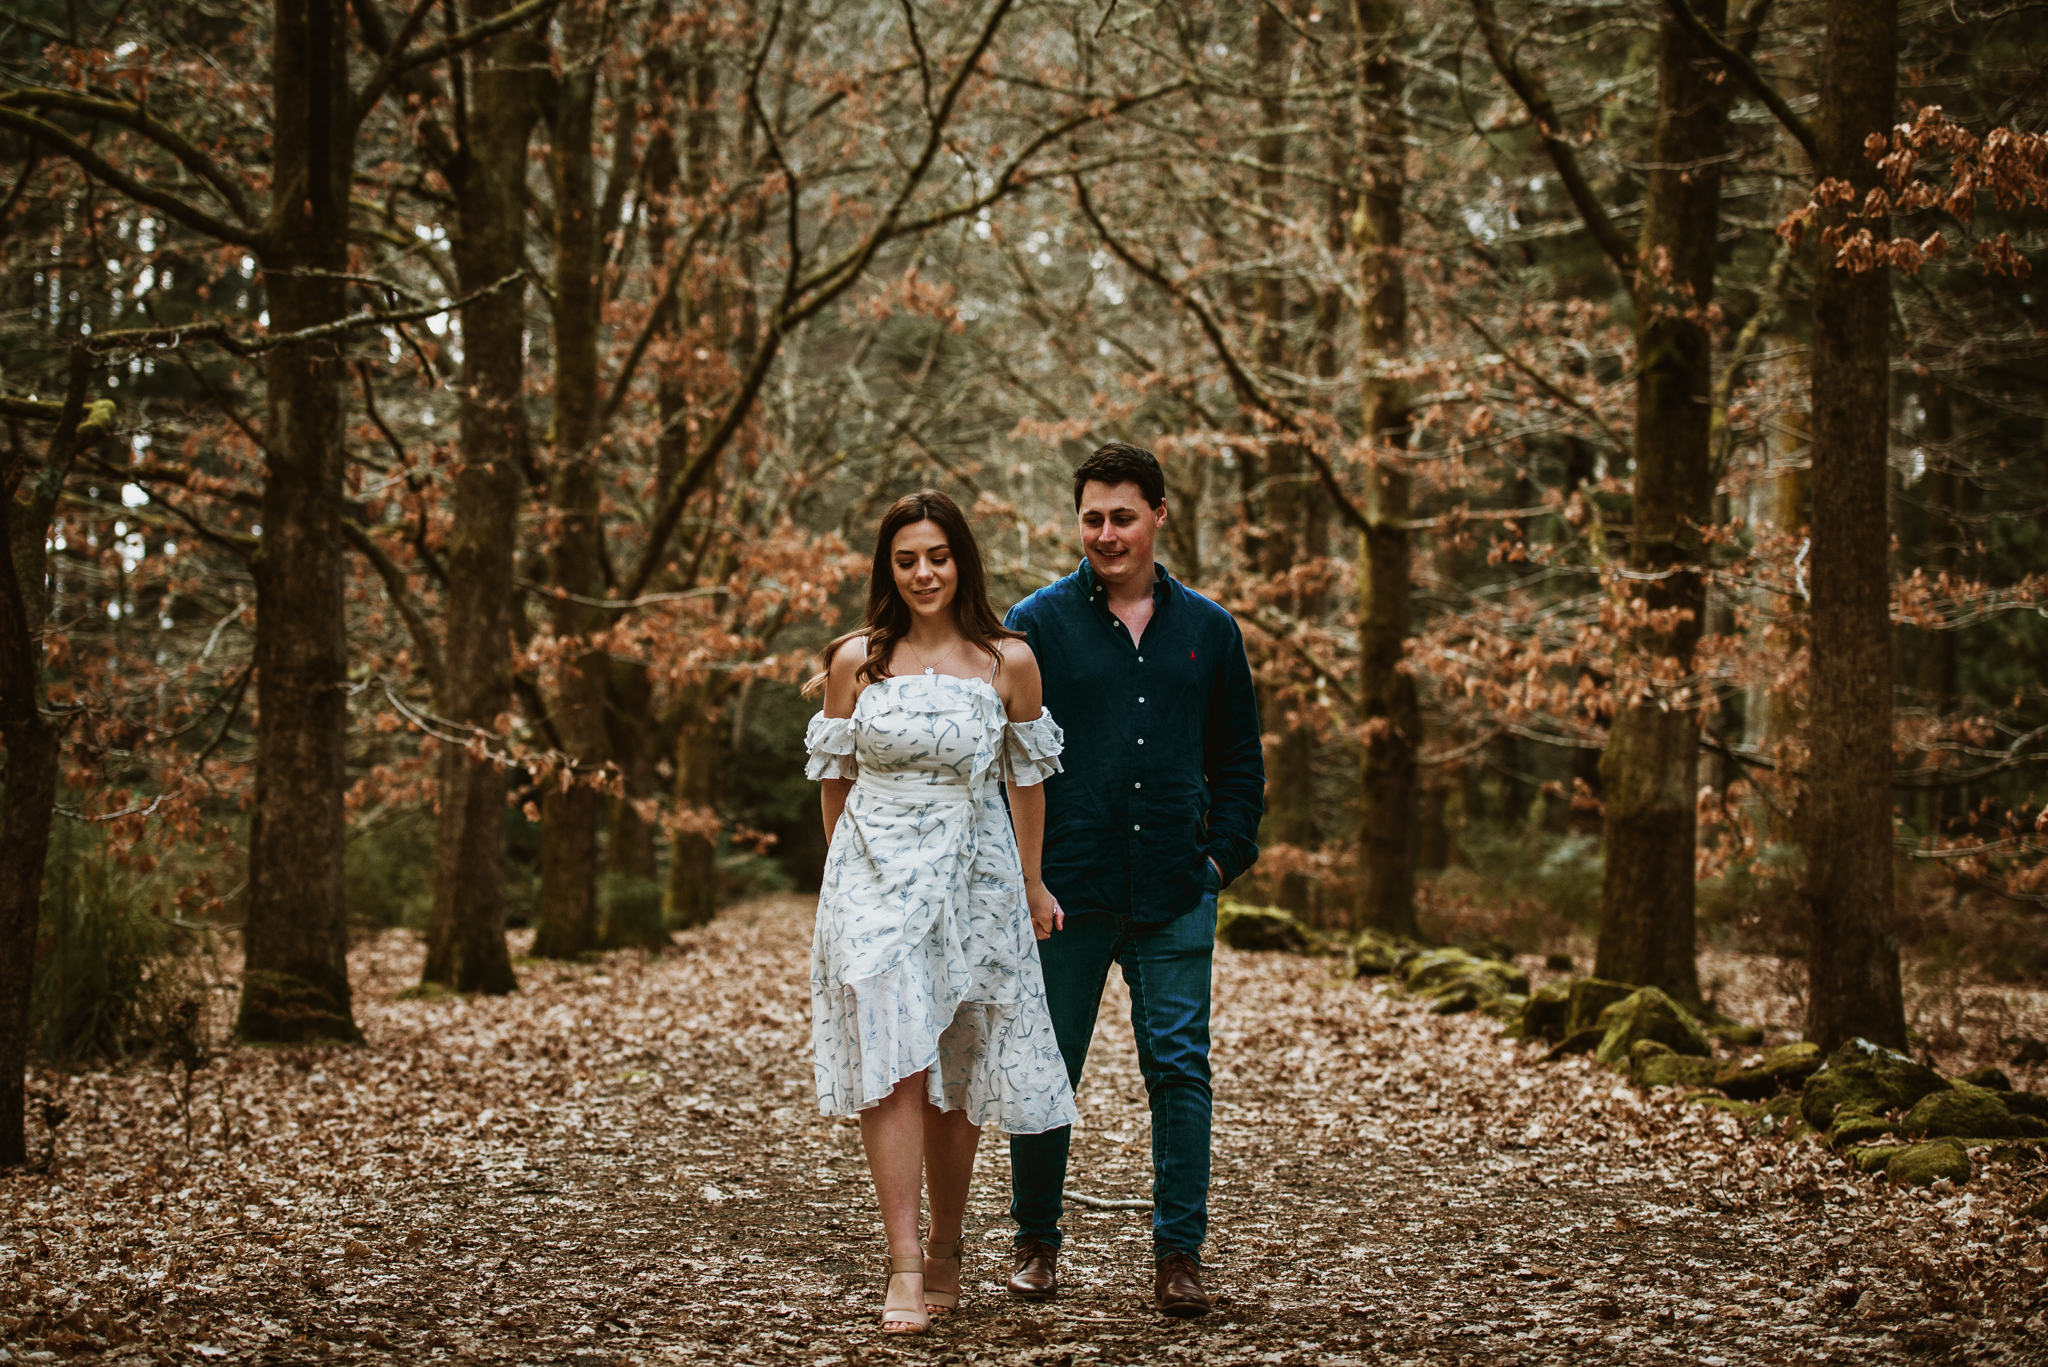 launceston couples photographer-17.jpg